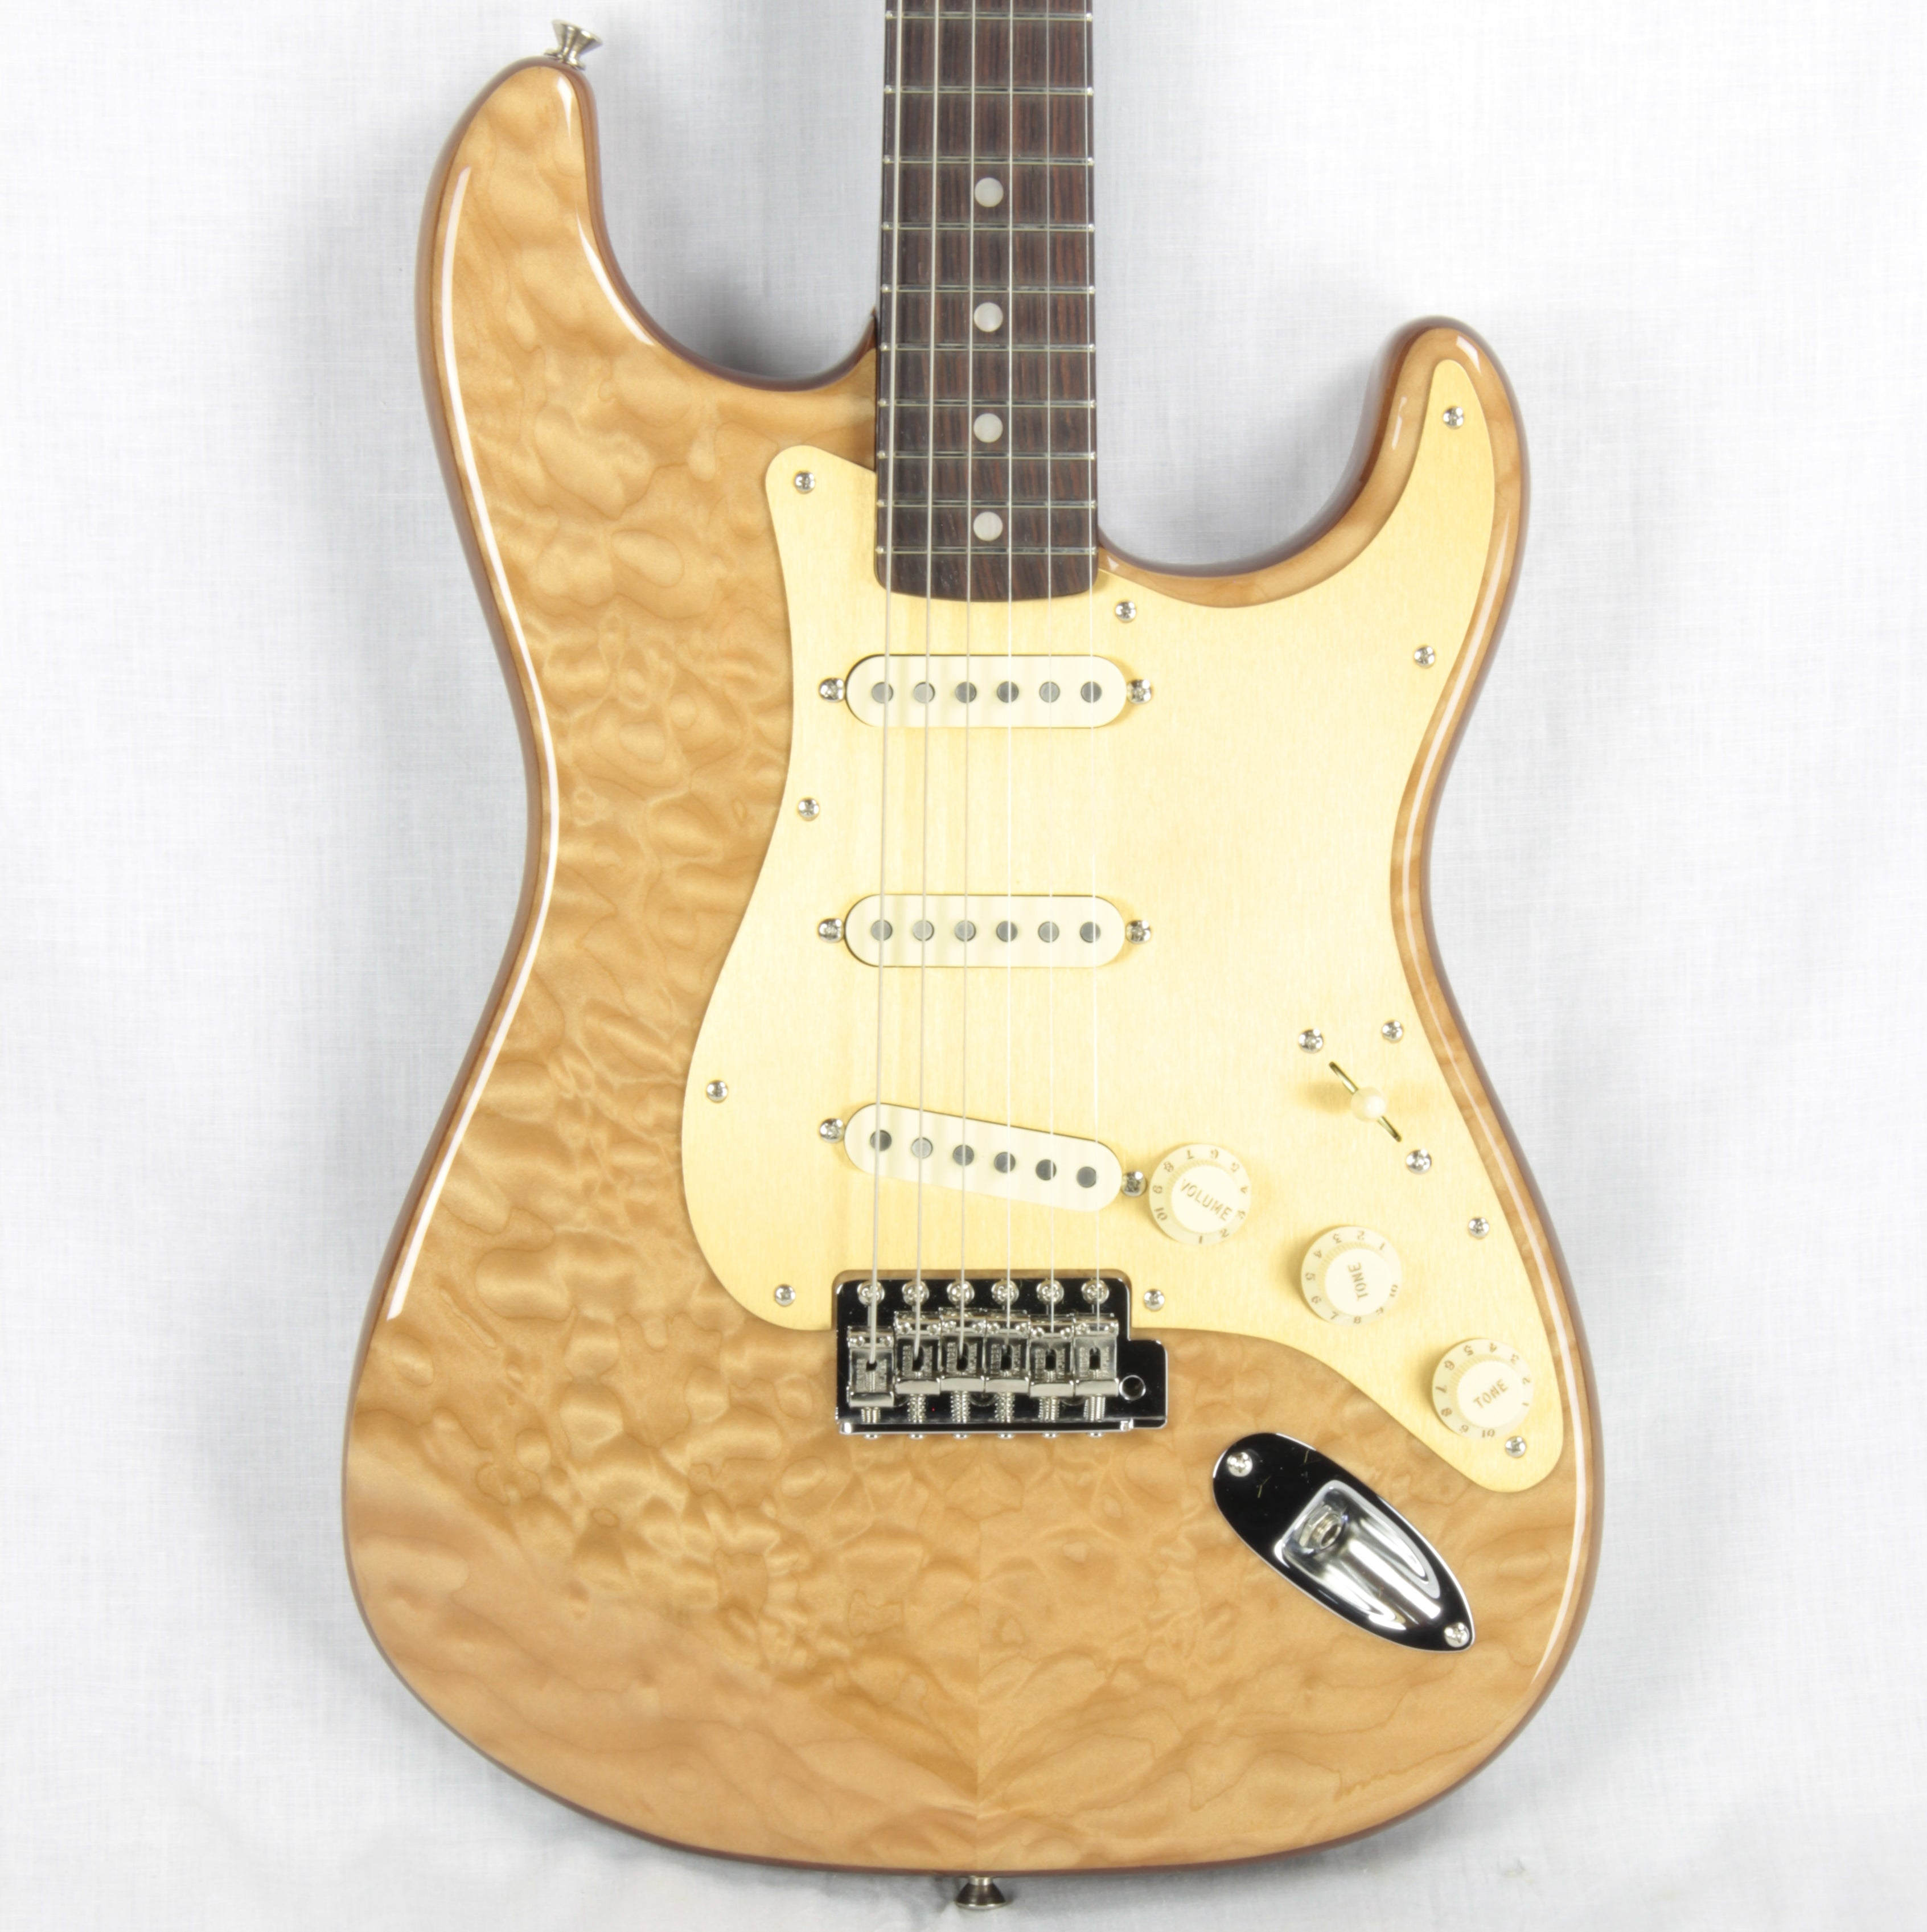 2019 Fender USA Rarities Quilt Maple Top American Original '60s Stratocaster Natural Rosewood Neck Strat